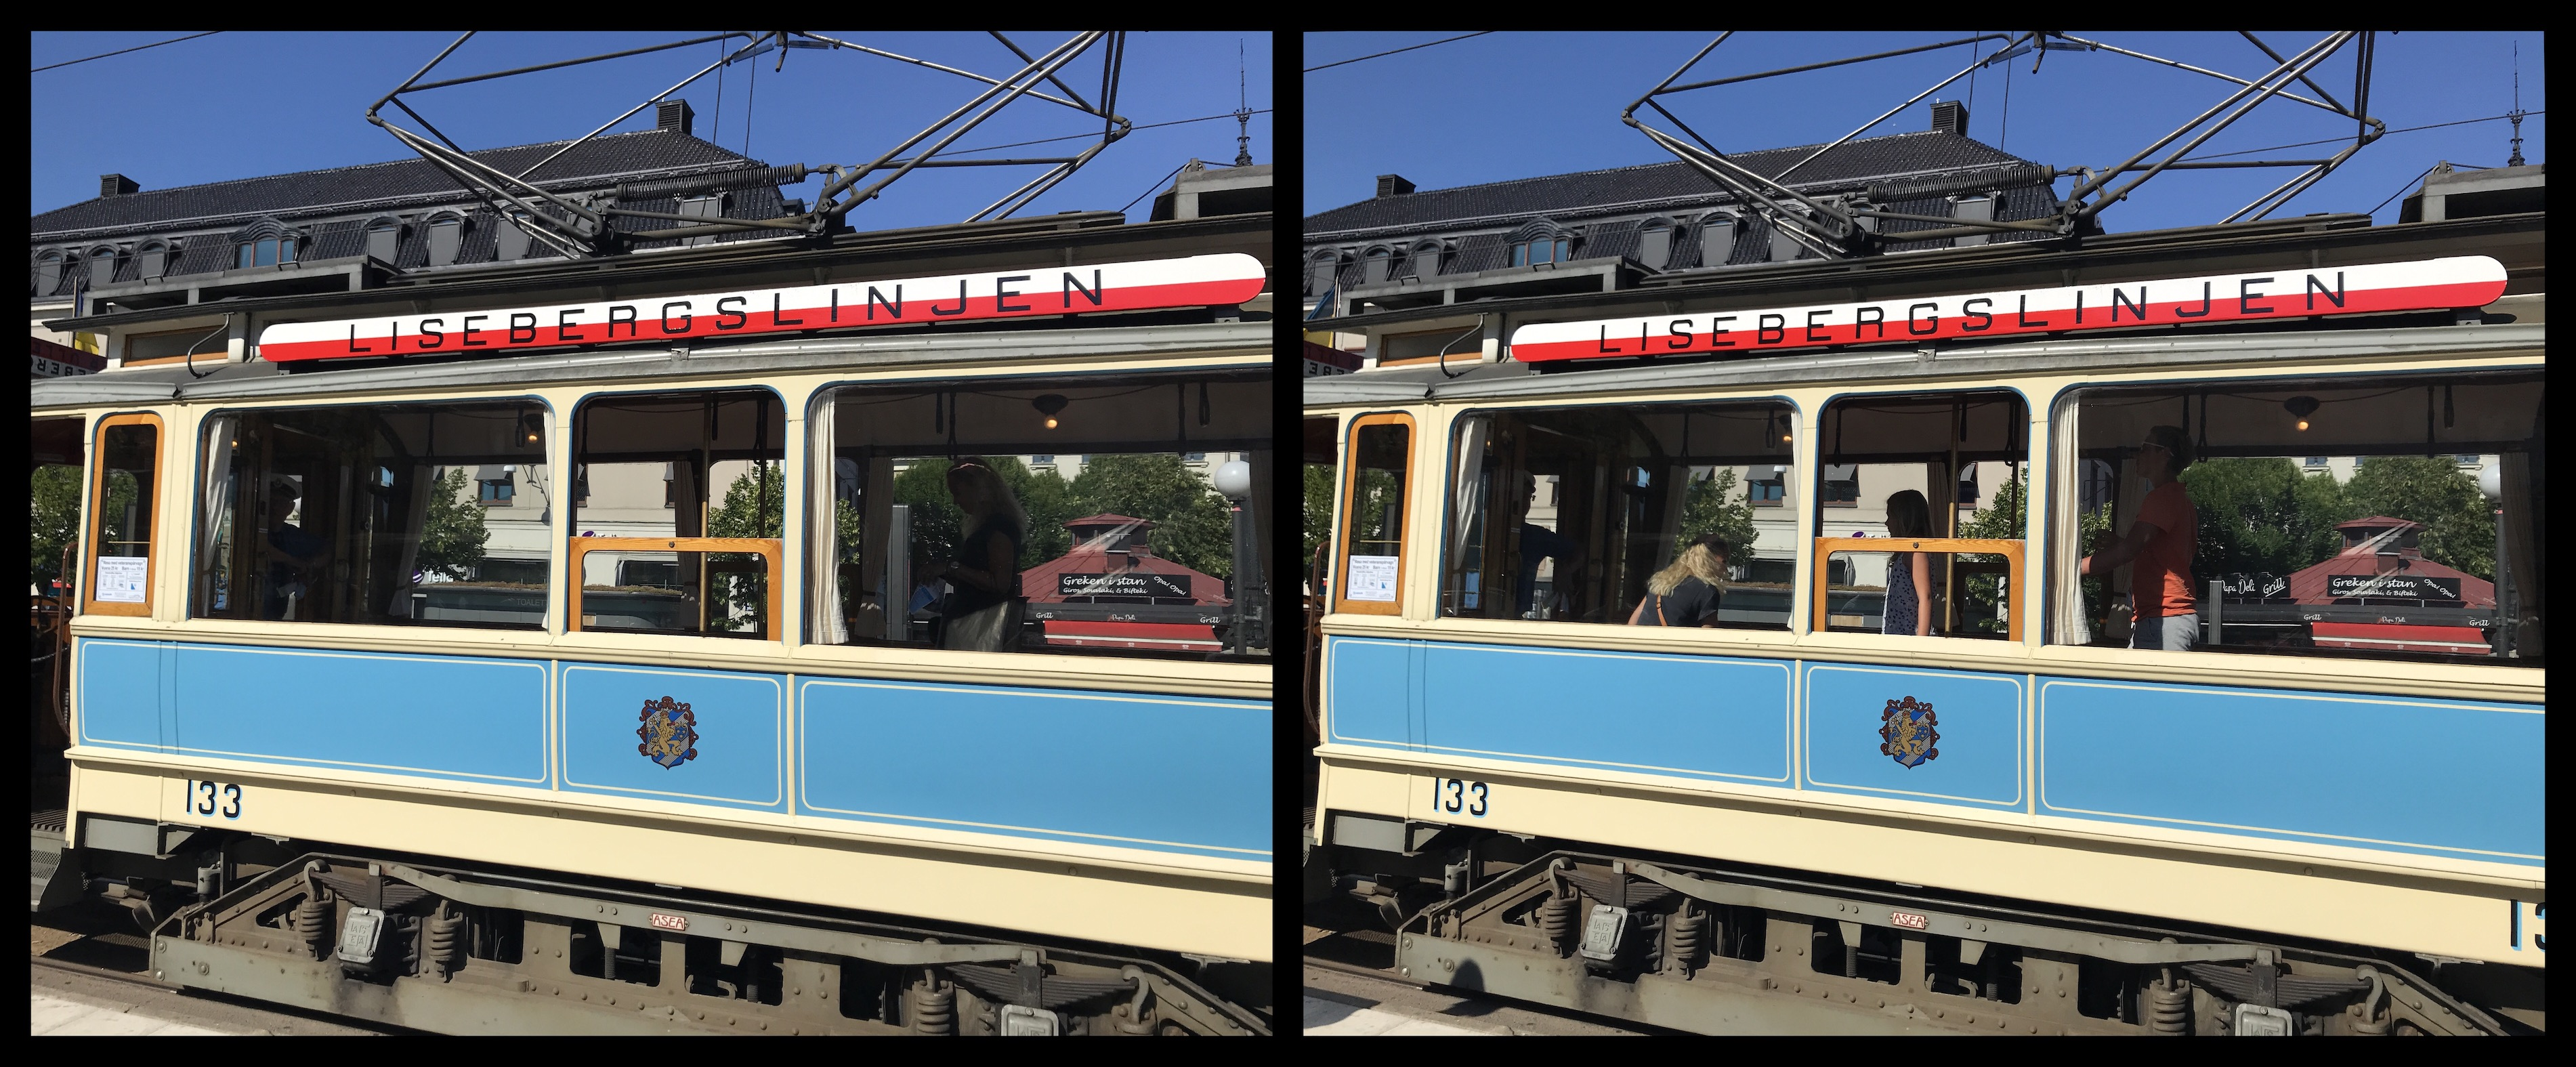 The Liseberg tram (8.7% deviation)